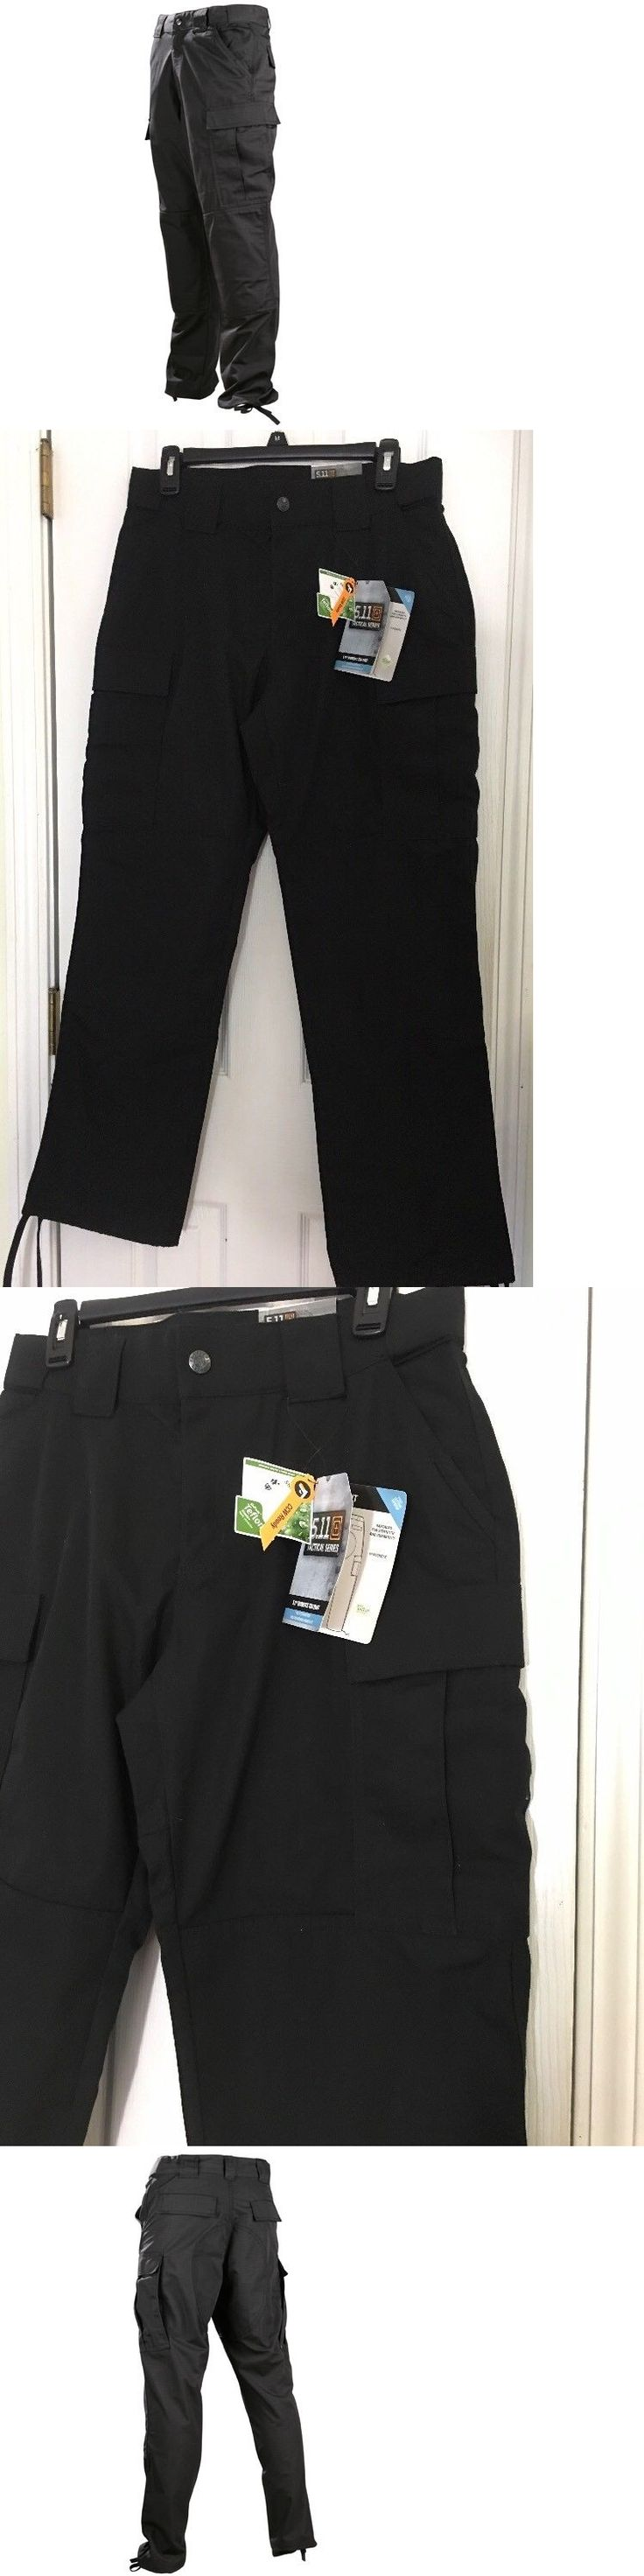 Tactical Clothing 177896: Nwt Womens Ems? Black Cargo 511 Tactical Tdu Pants 8 Ripstop 64359 -> BUY IT NOW ONLY: $36.88 on eBay!